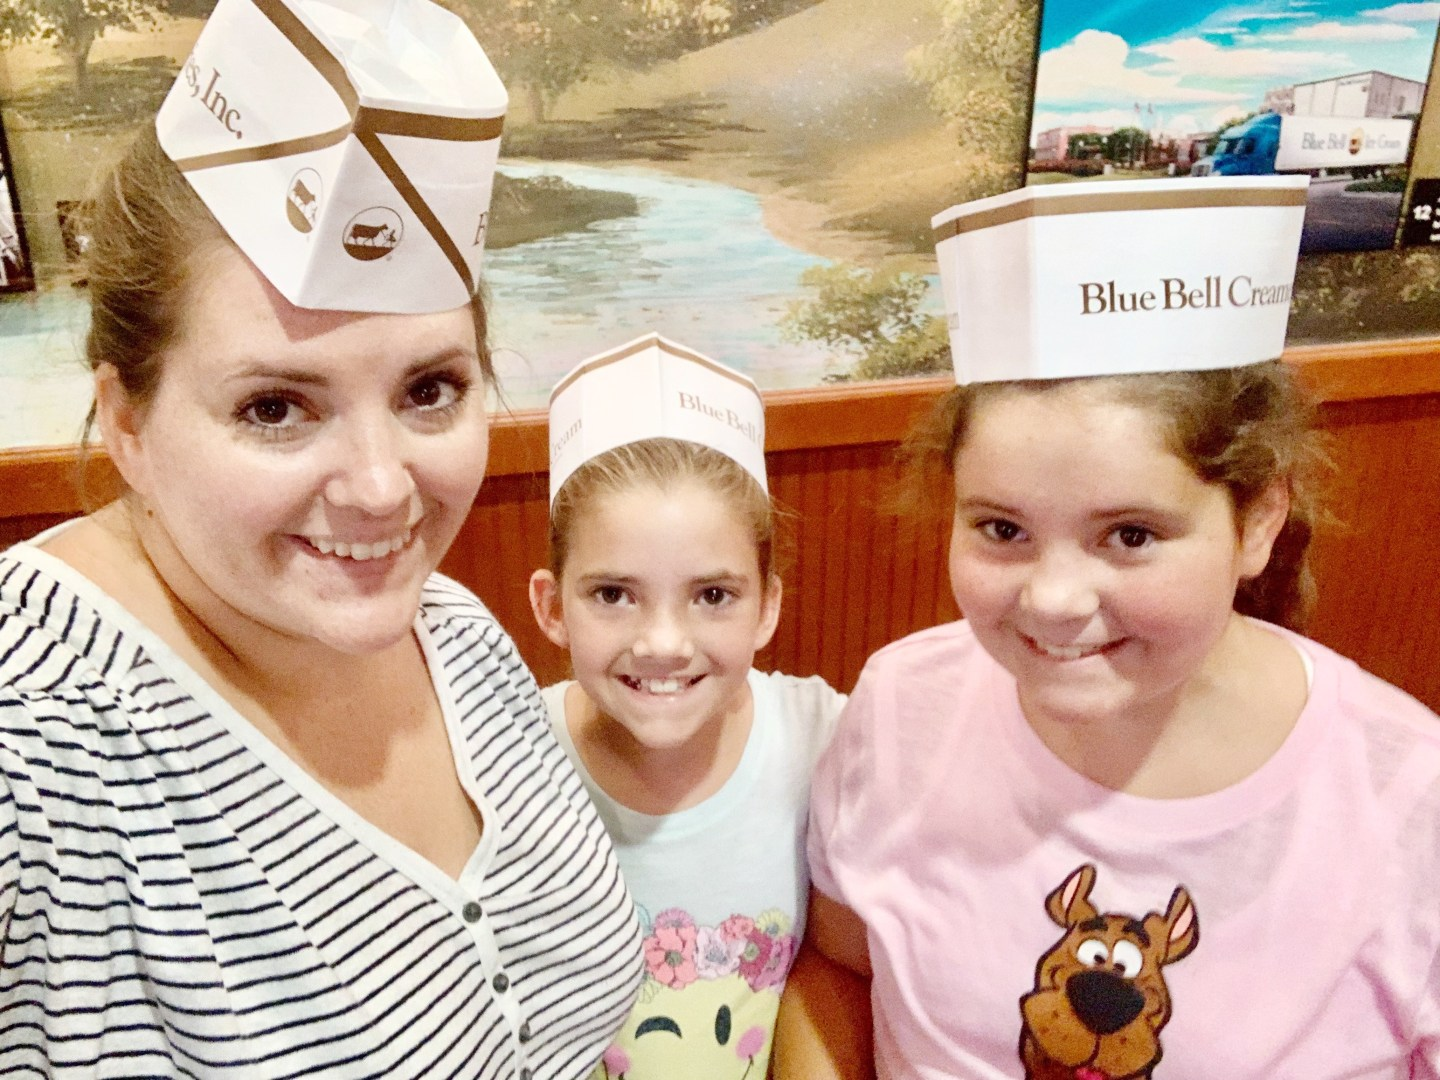 Checking out the Visitor's Center at the Blue Bell Creamery in Brenhmam, Texas.